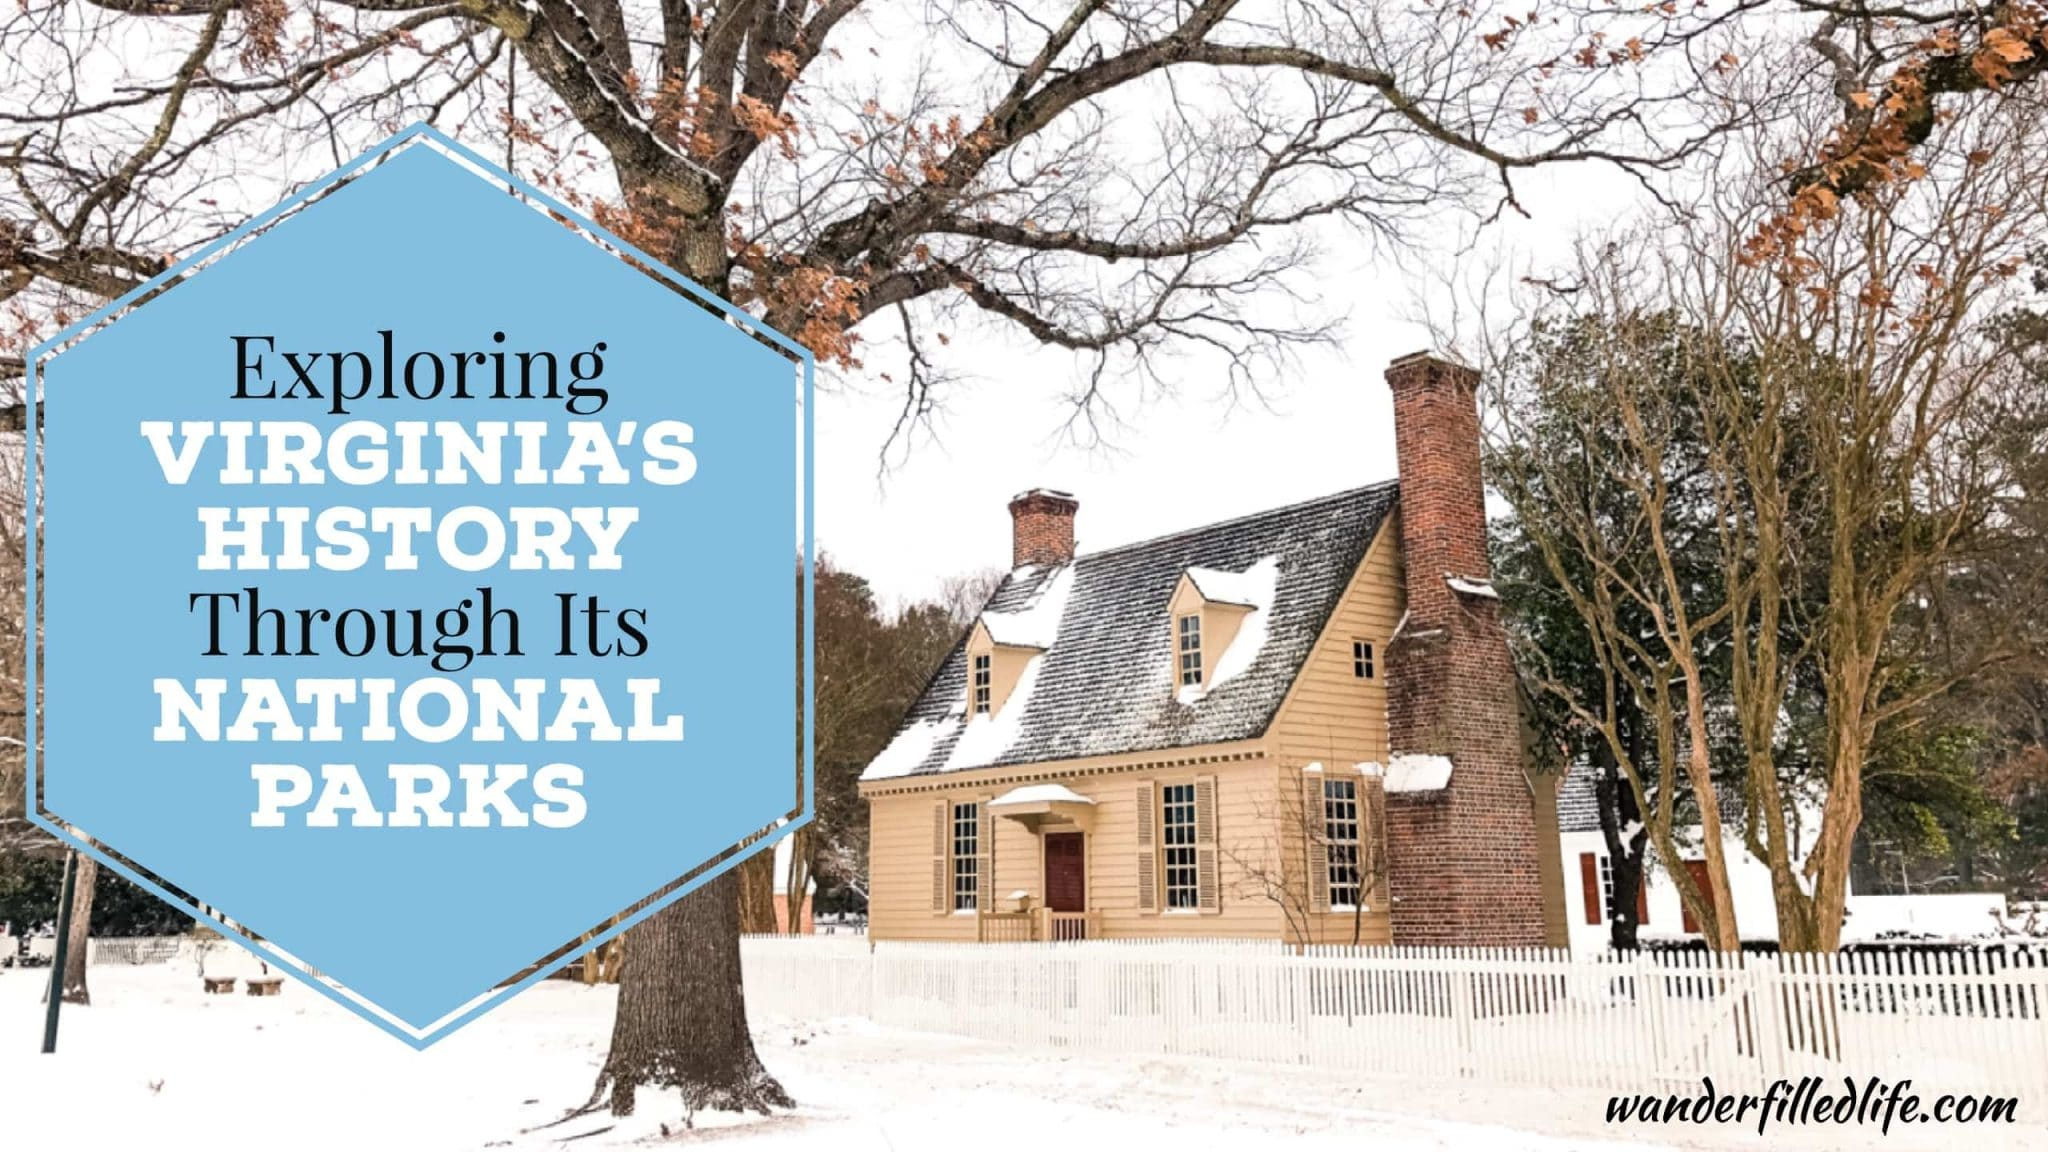 Exploring Virginia's History Through Its National Parks